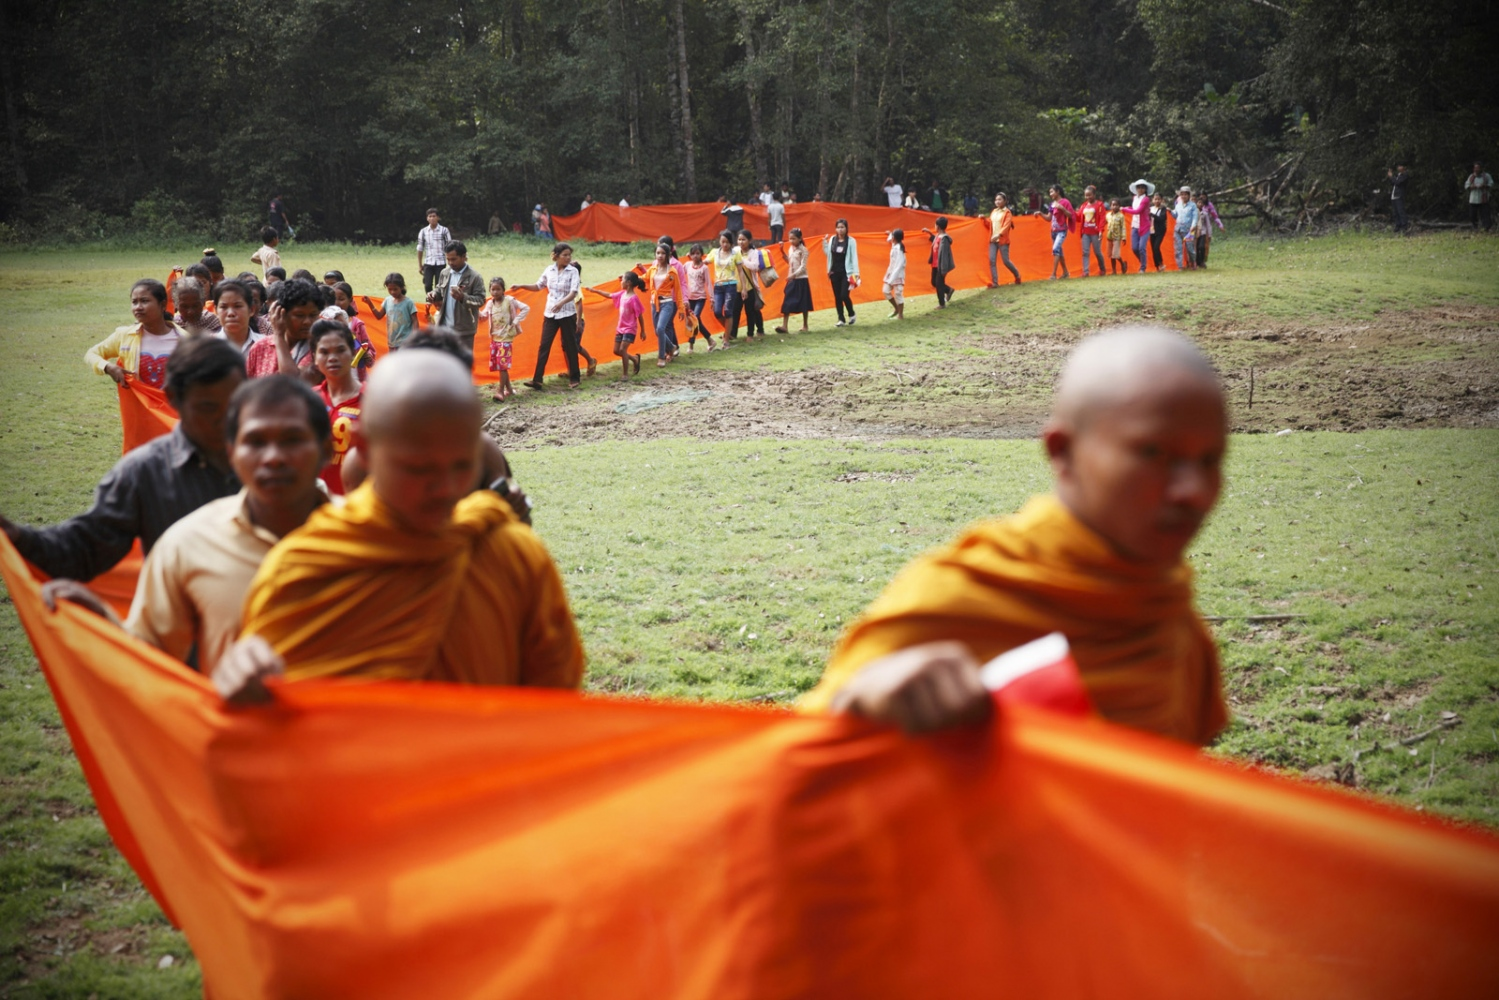 Cambodian Buddhist monks and local people bless large trees by wrapping orange cloth around them and praying. Following uncontrolled forest destruction in the Central Cardamom Protected Forest (CCPF) an eco-warrior monk movement has begun whereby monks and villagers try to protect areas of forest by blessing trees to deter would-be loggers.